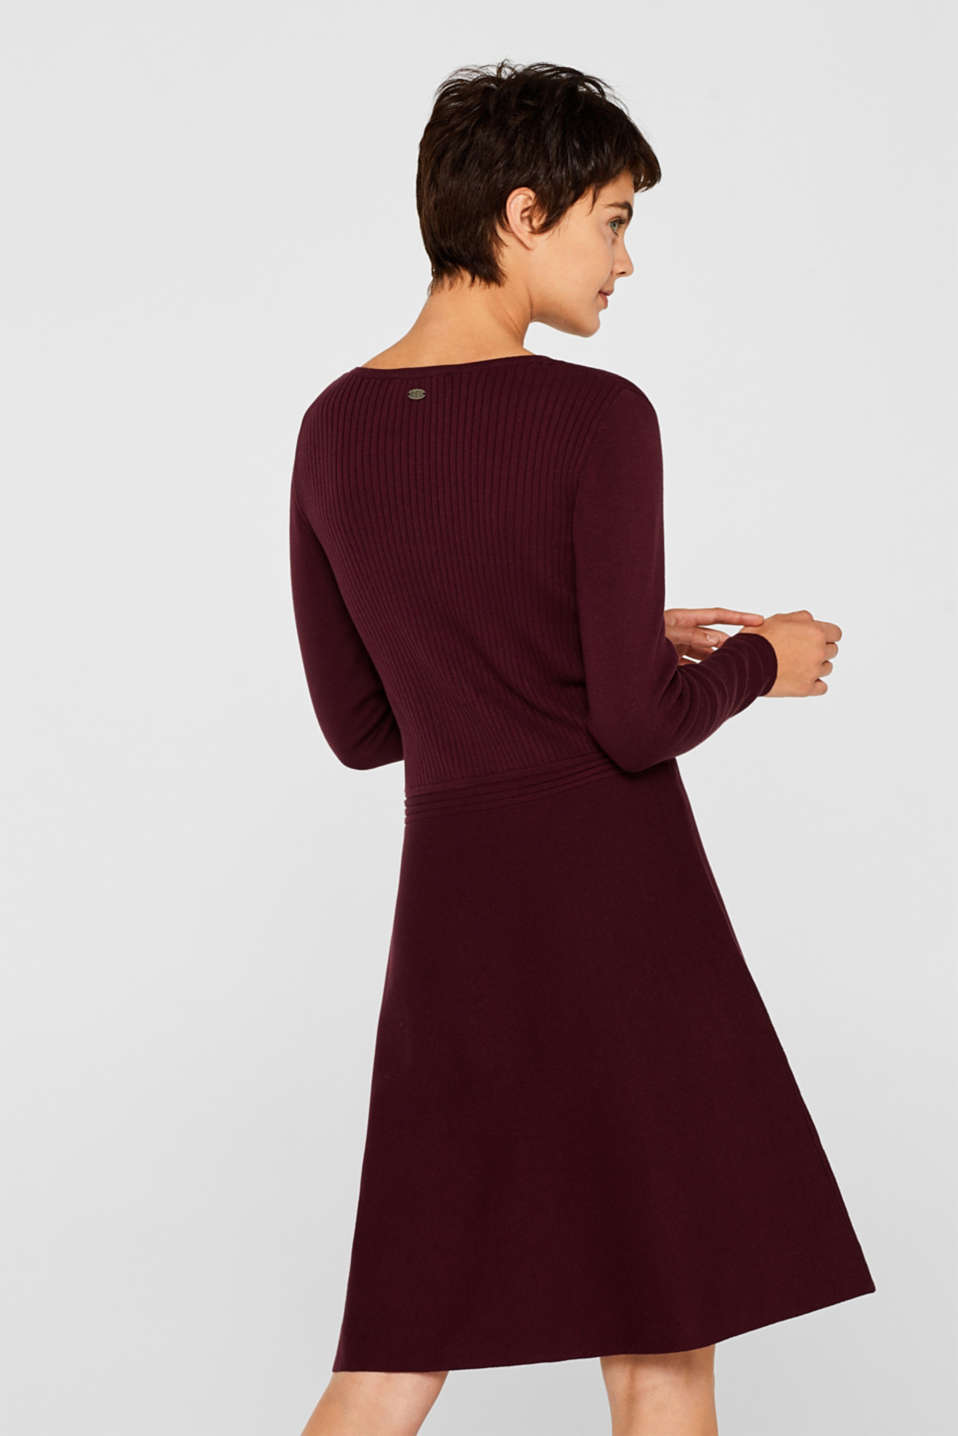 Knit dress with a ribbed texture, BORDEAUX RED, detail image number 2